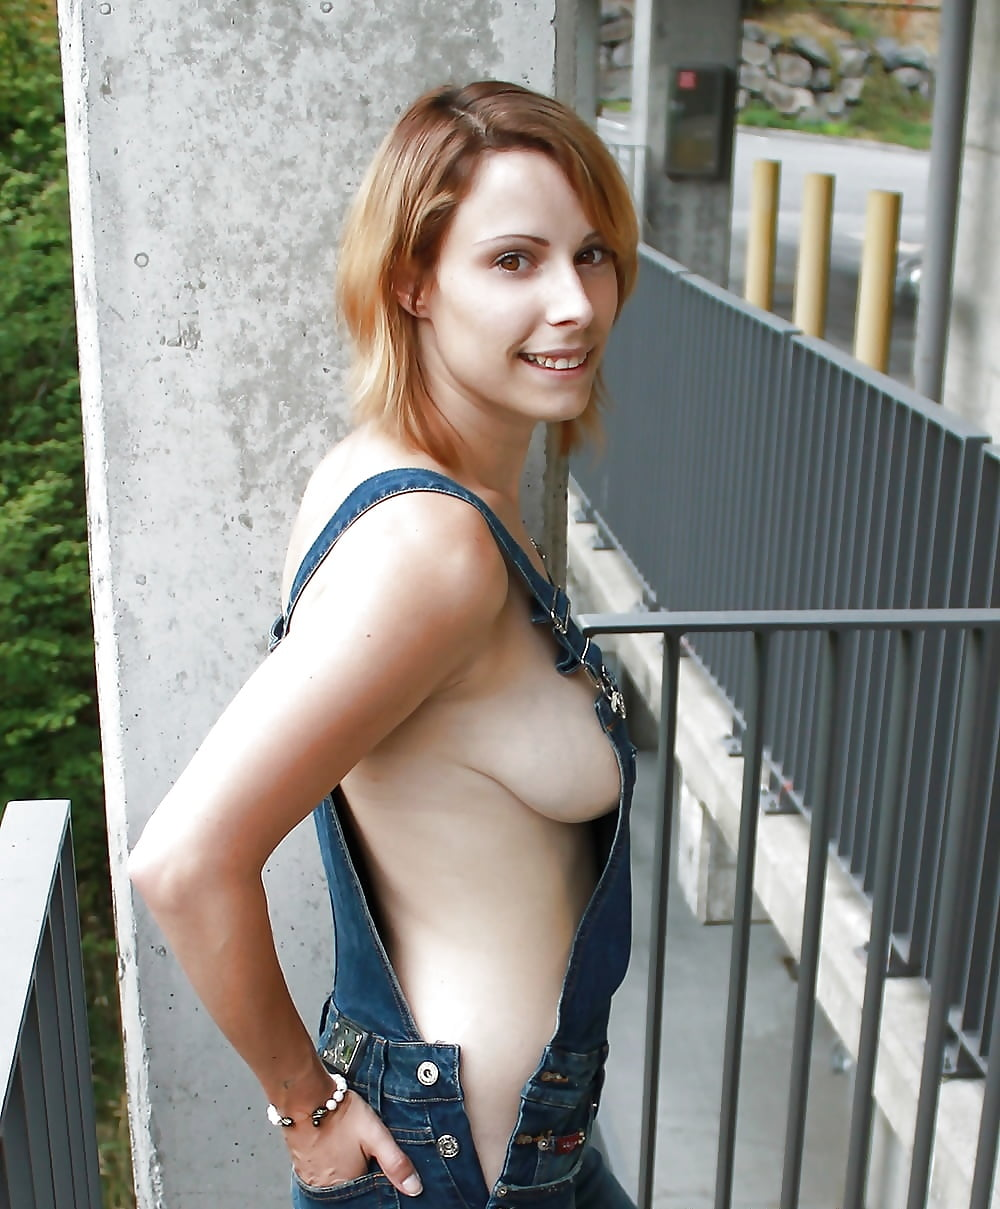 Girls overalls nude, blow job mouthful